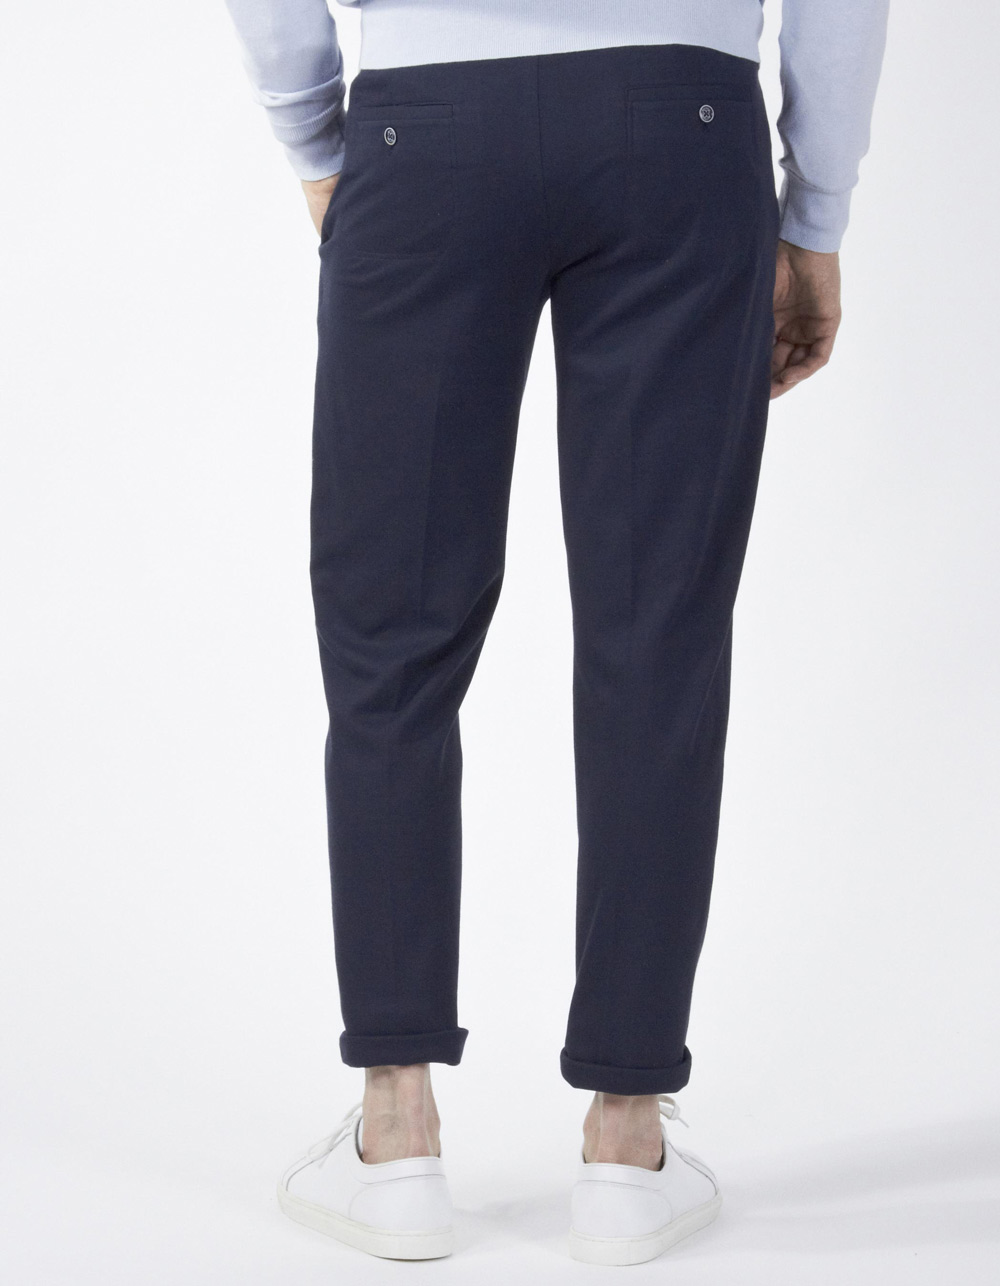 Navy blue trousers with darts and drawstring waist - Backside